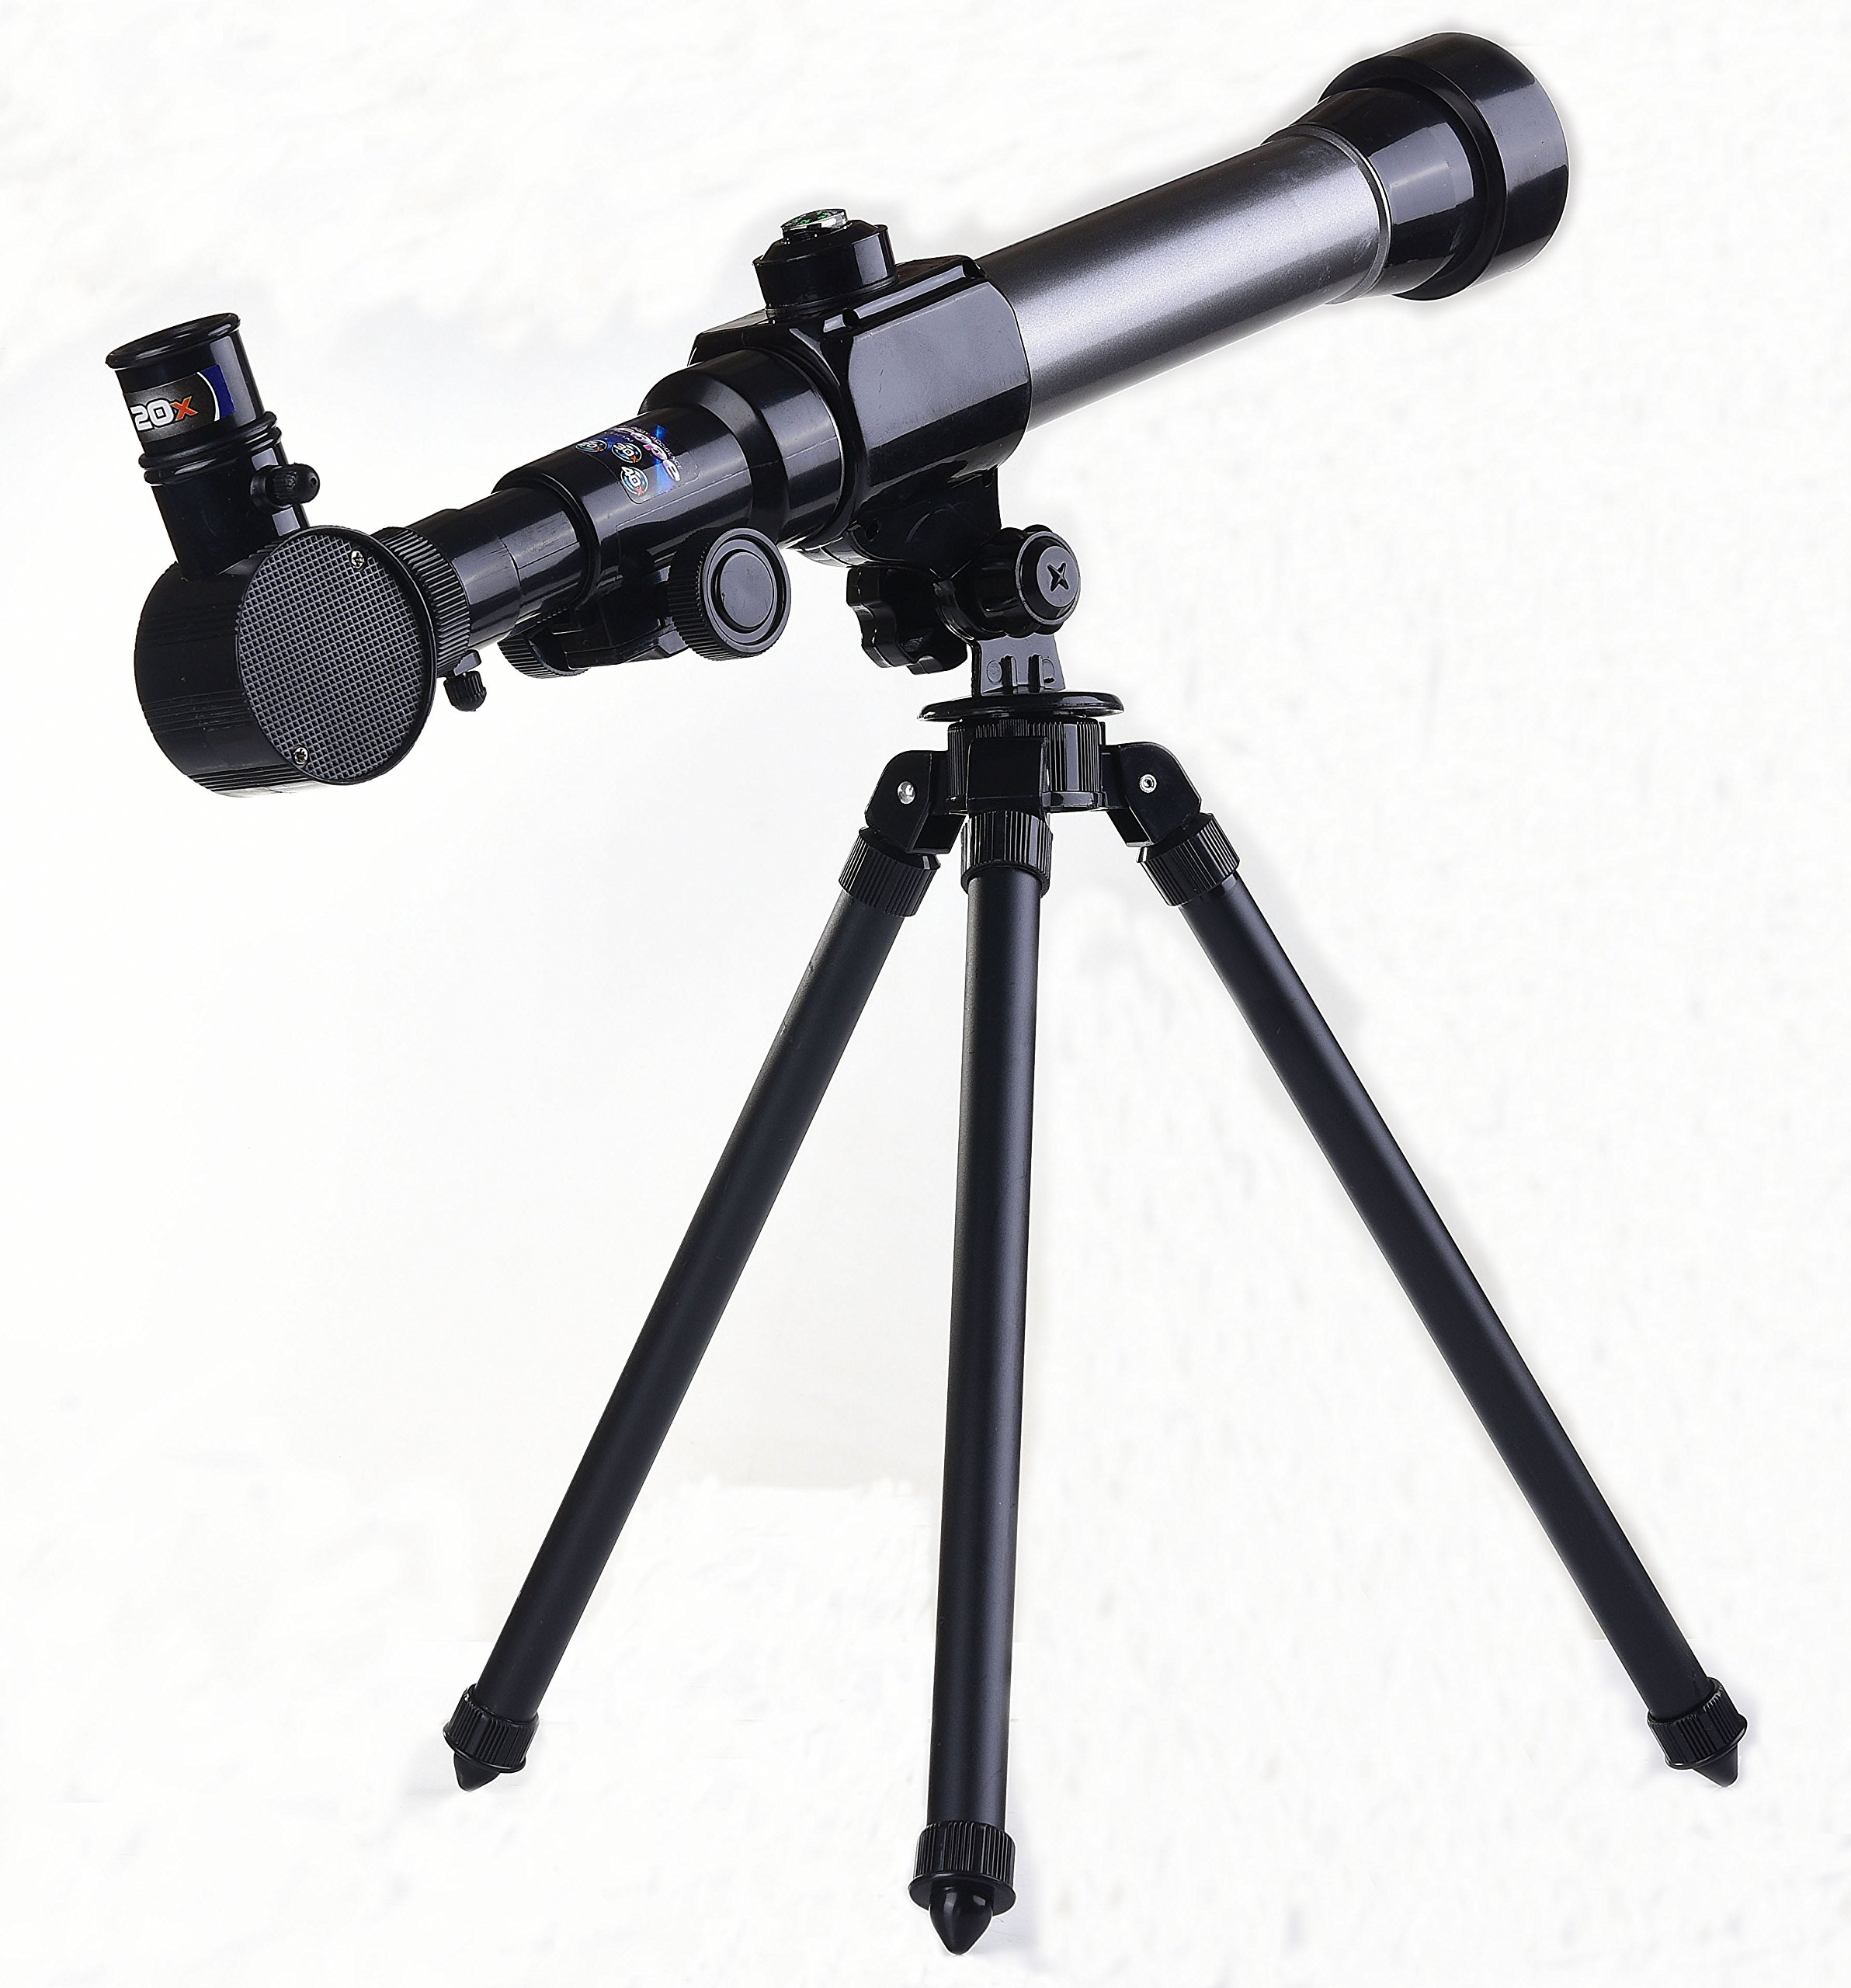 Kids Telescope for Meteor Astronomic 60mm Compact Portable BestTelescope for Adults Beginners With Three Different Eyepiece For Astronomy Professional